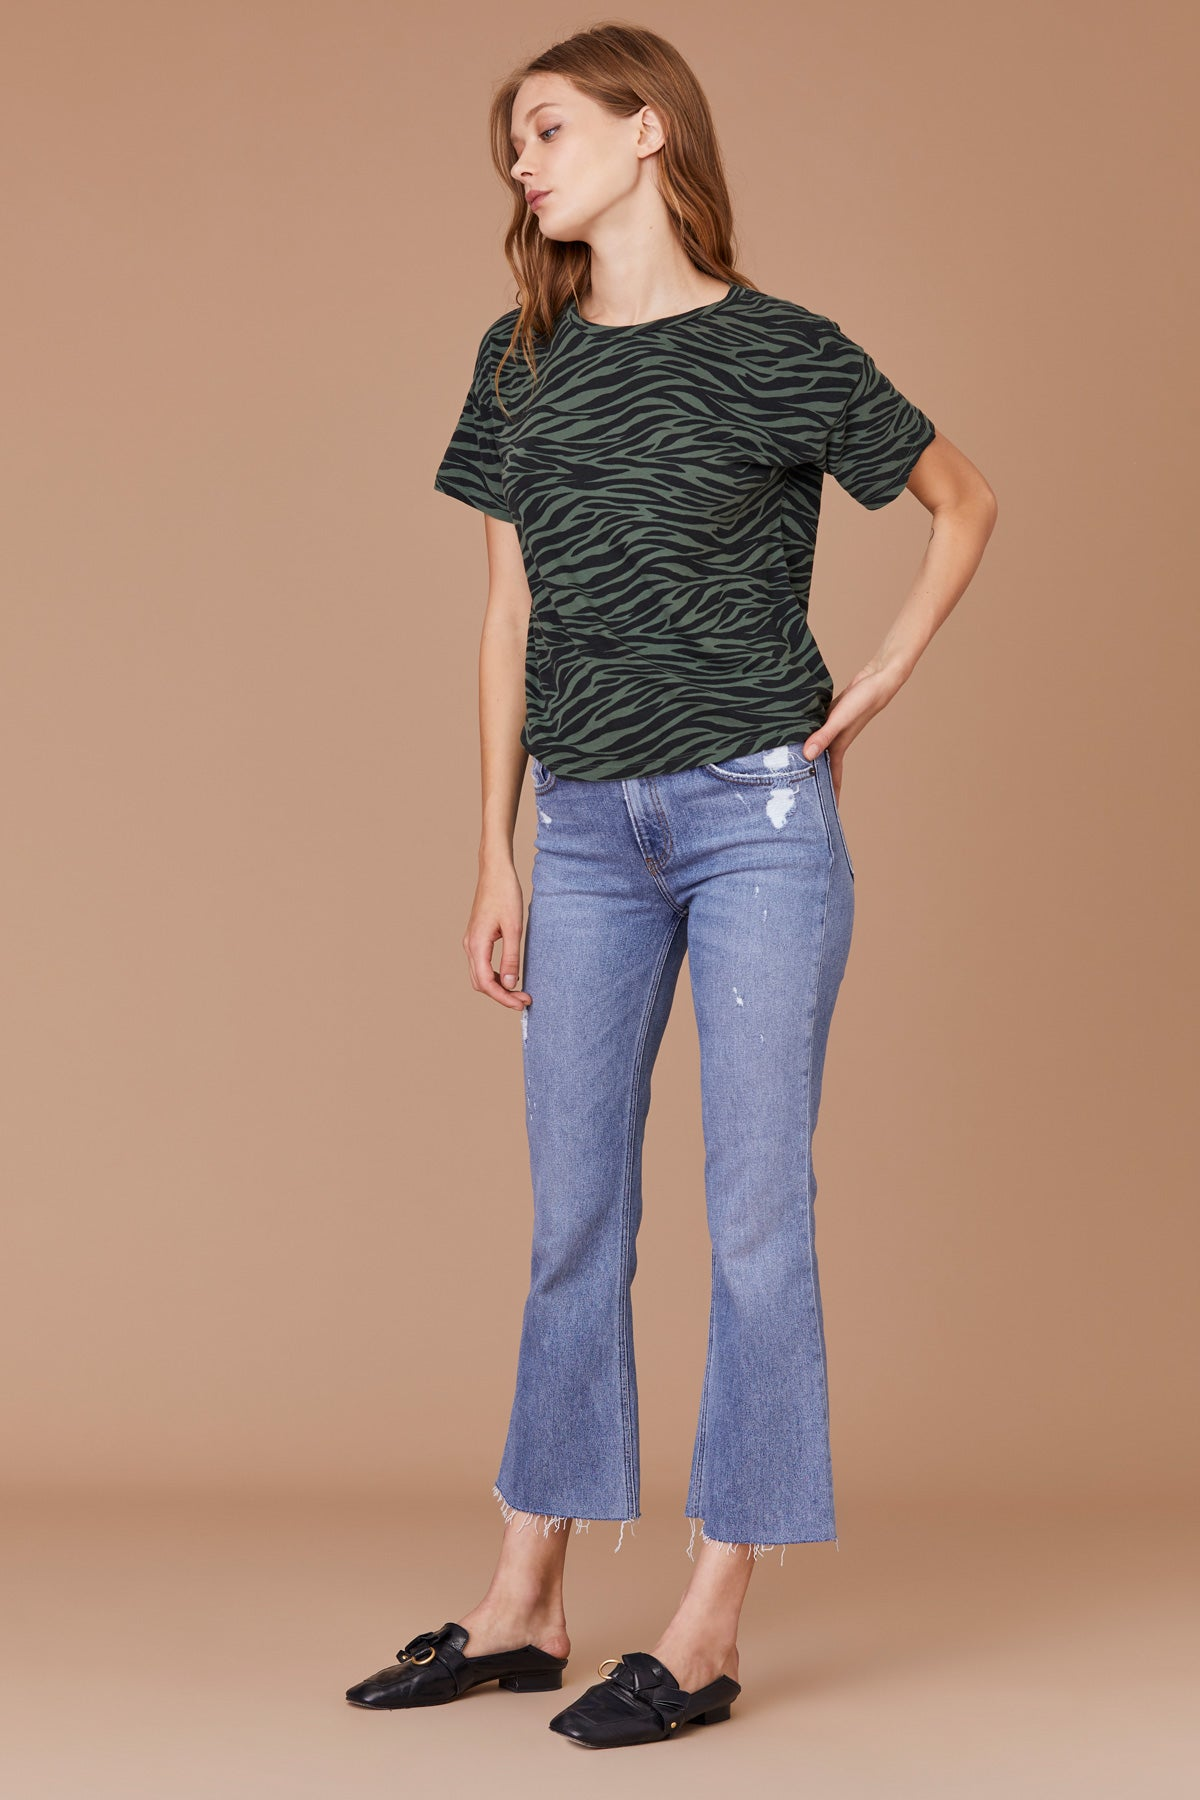 LNA Zebra Print Boxy Crew Tee in Forest Green and Black